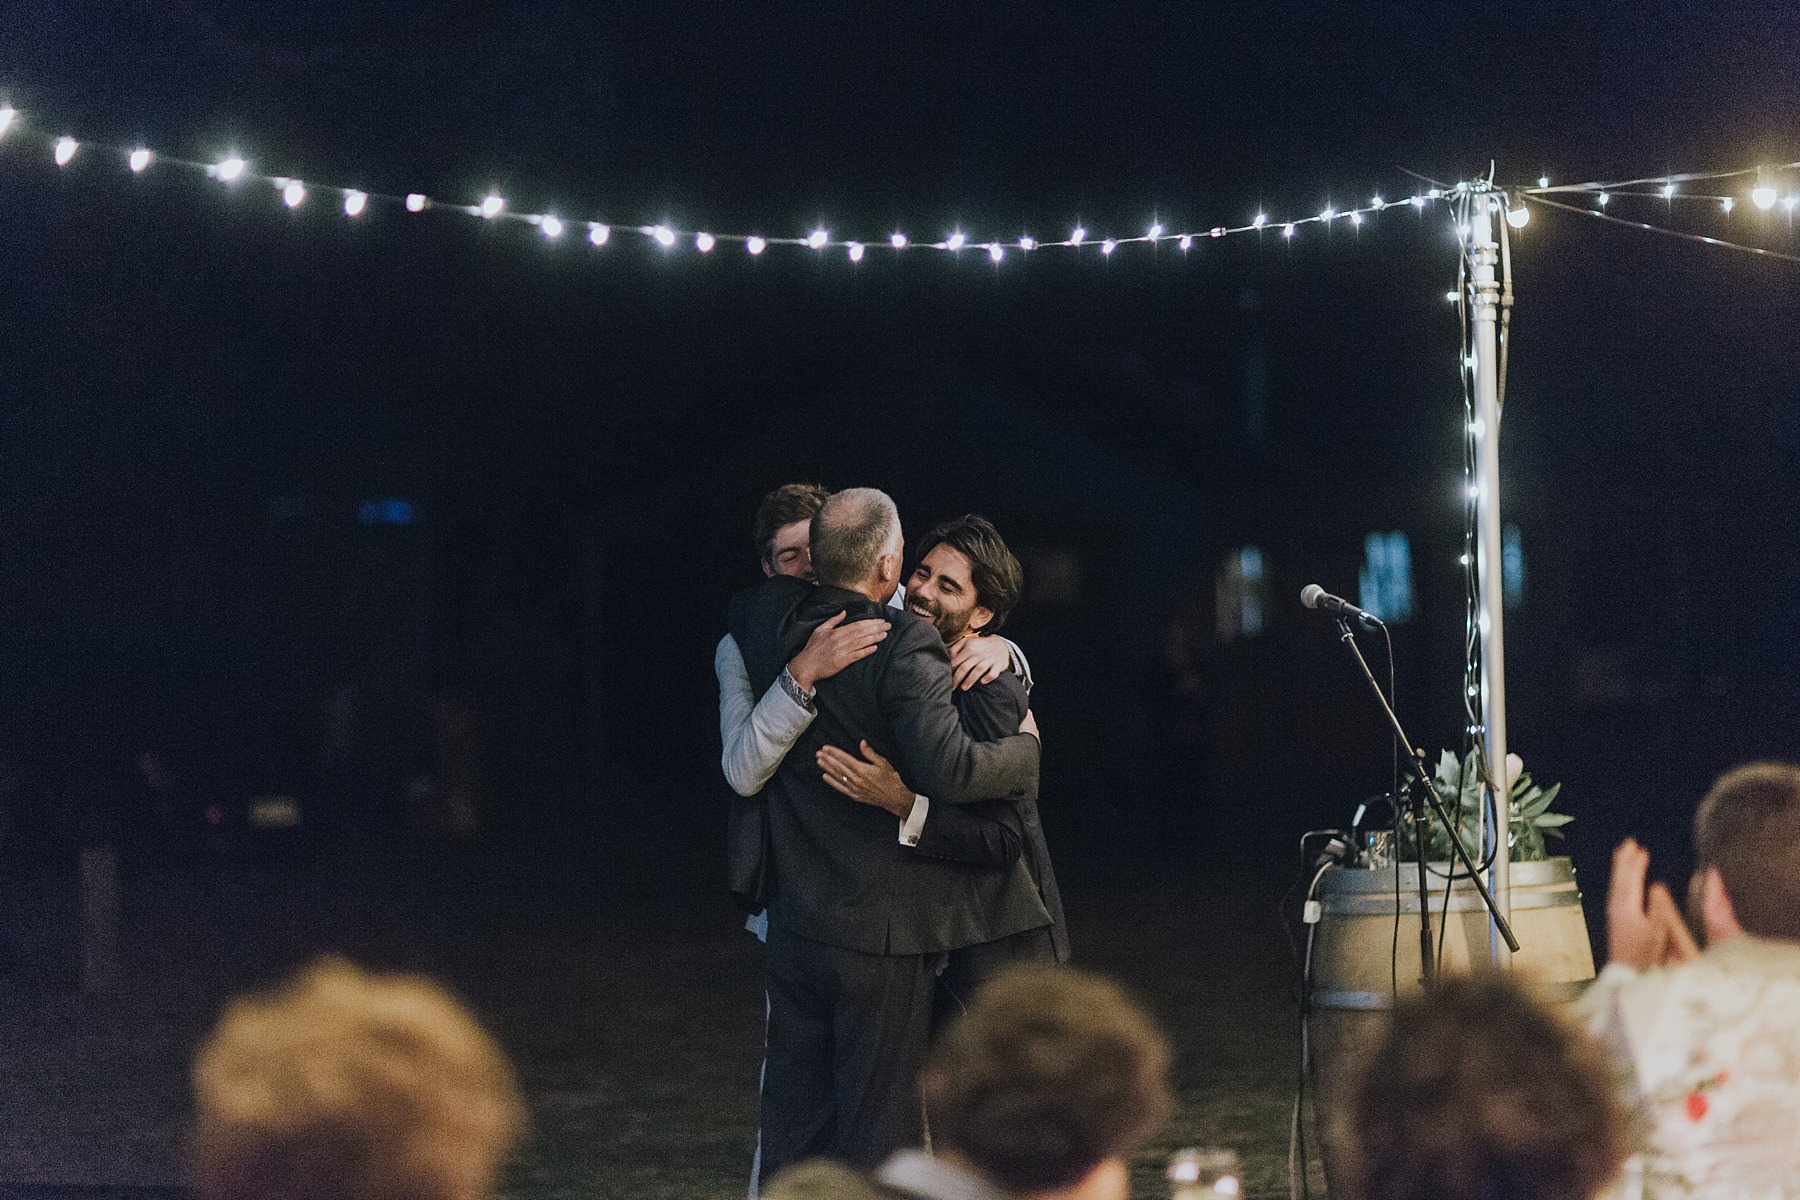 father of the bride being hugged by his new son in law